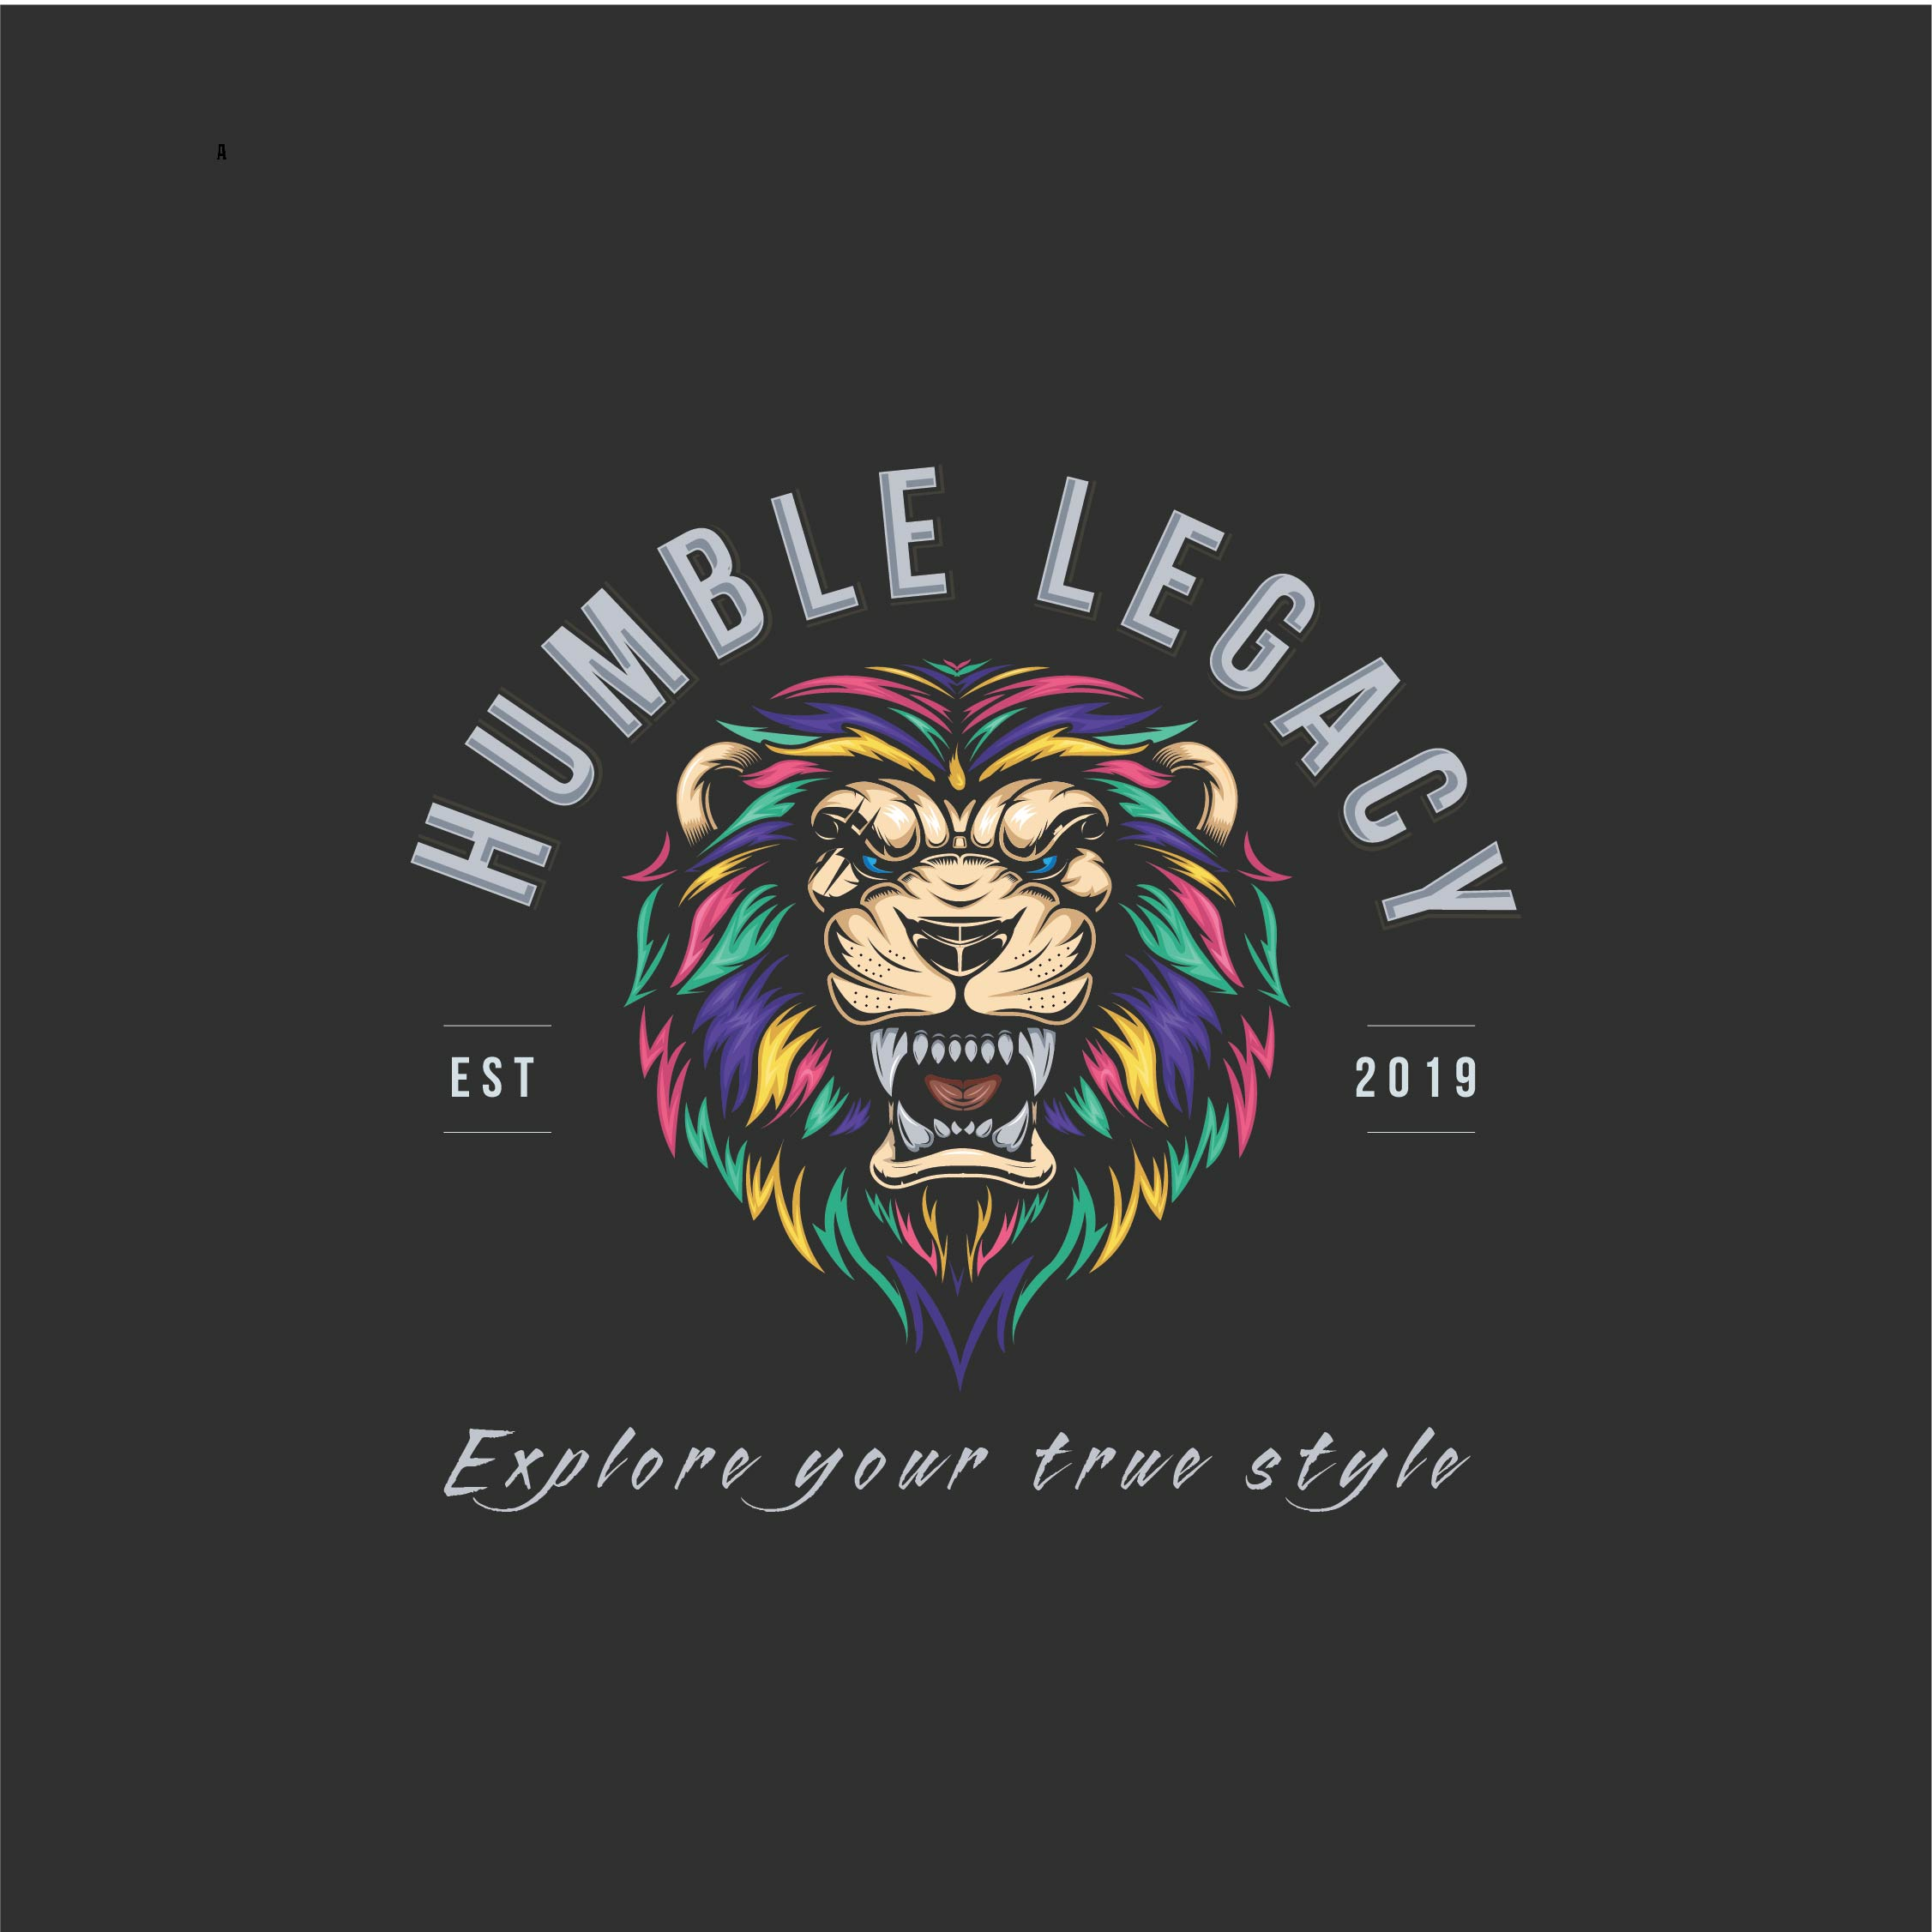 Humble legacy_Instagram copy